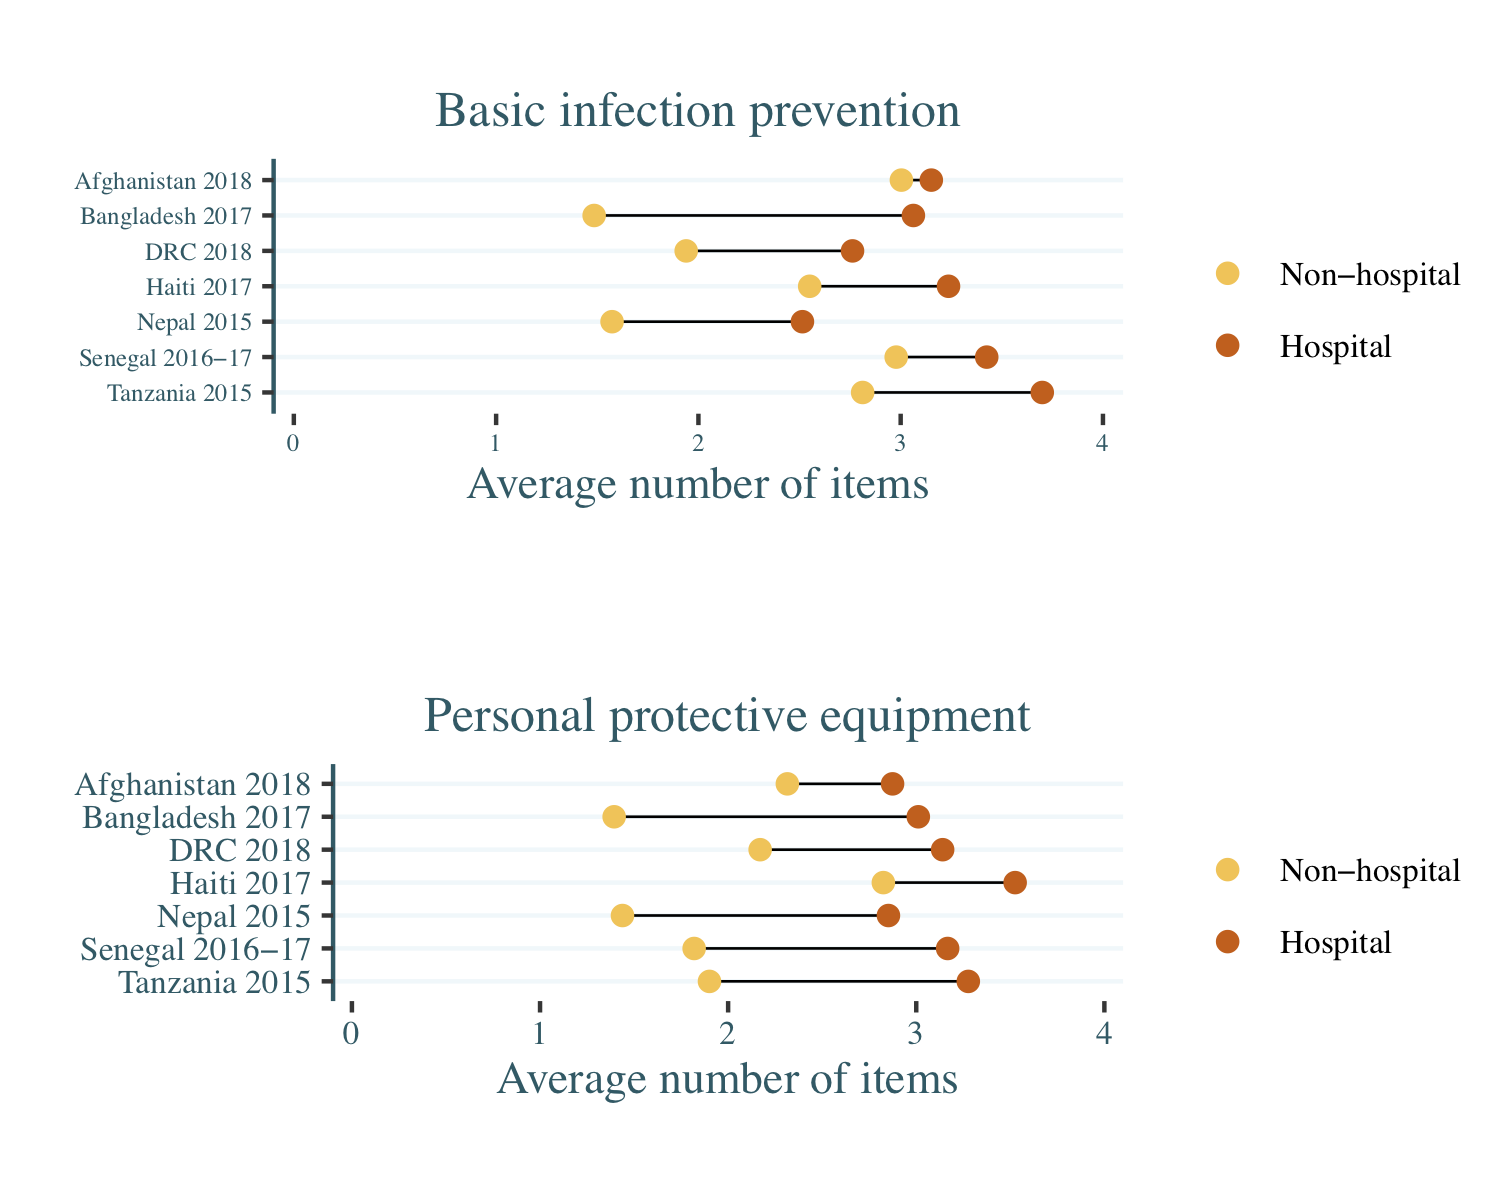 Figure showing PPE and BIP stores across the 7 countries in hospitals and non-hospitals, with hospitals doing better